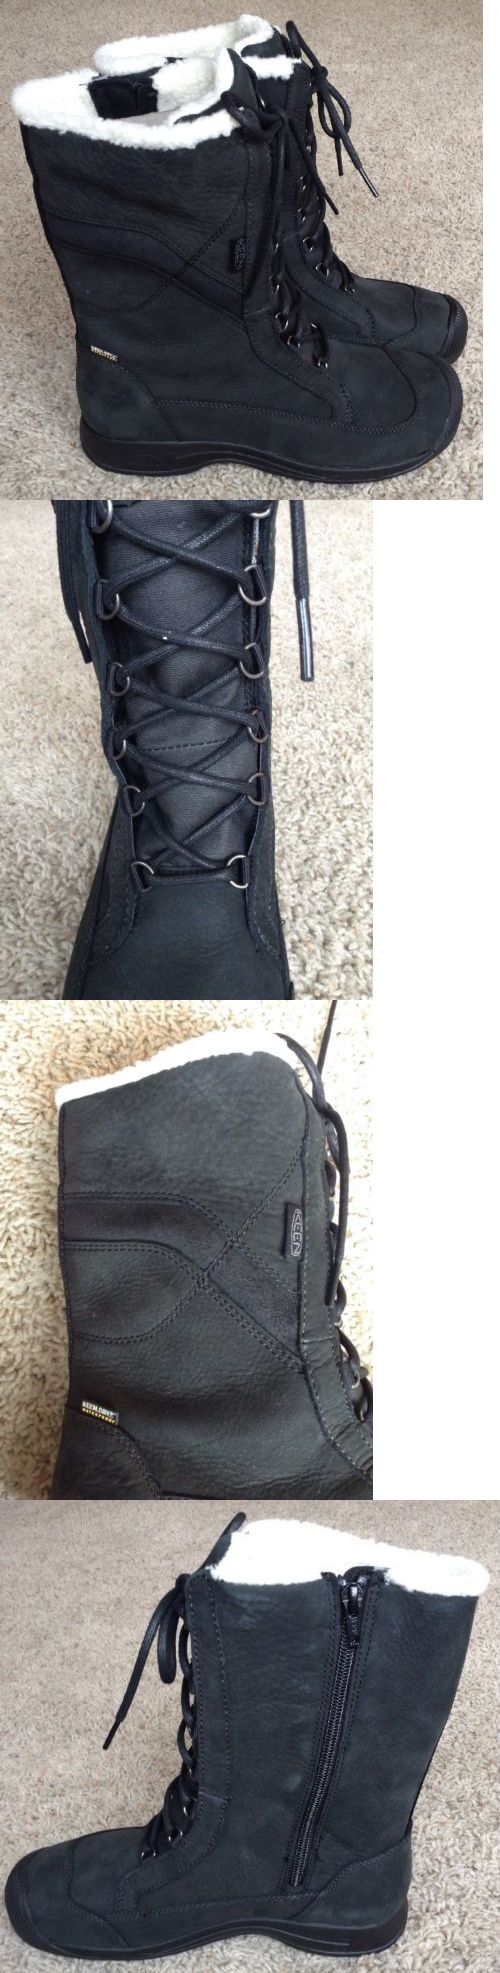 Womens 181393: Keen Reisen Winter Lace Wp Boot - Womens Size 9 - Black - Clearance! BUY IT NOW ONLY: $59.95